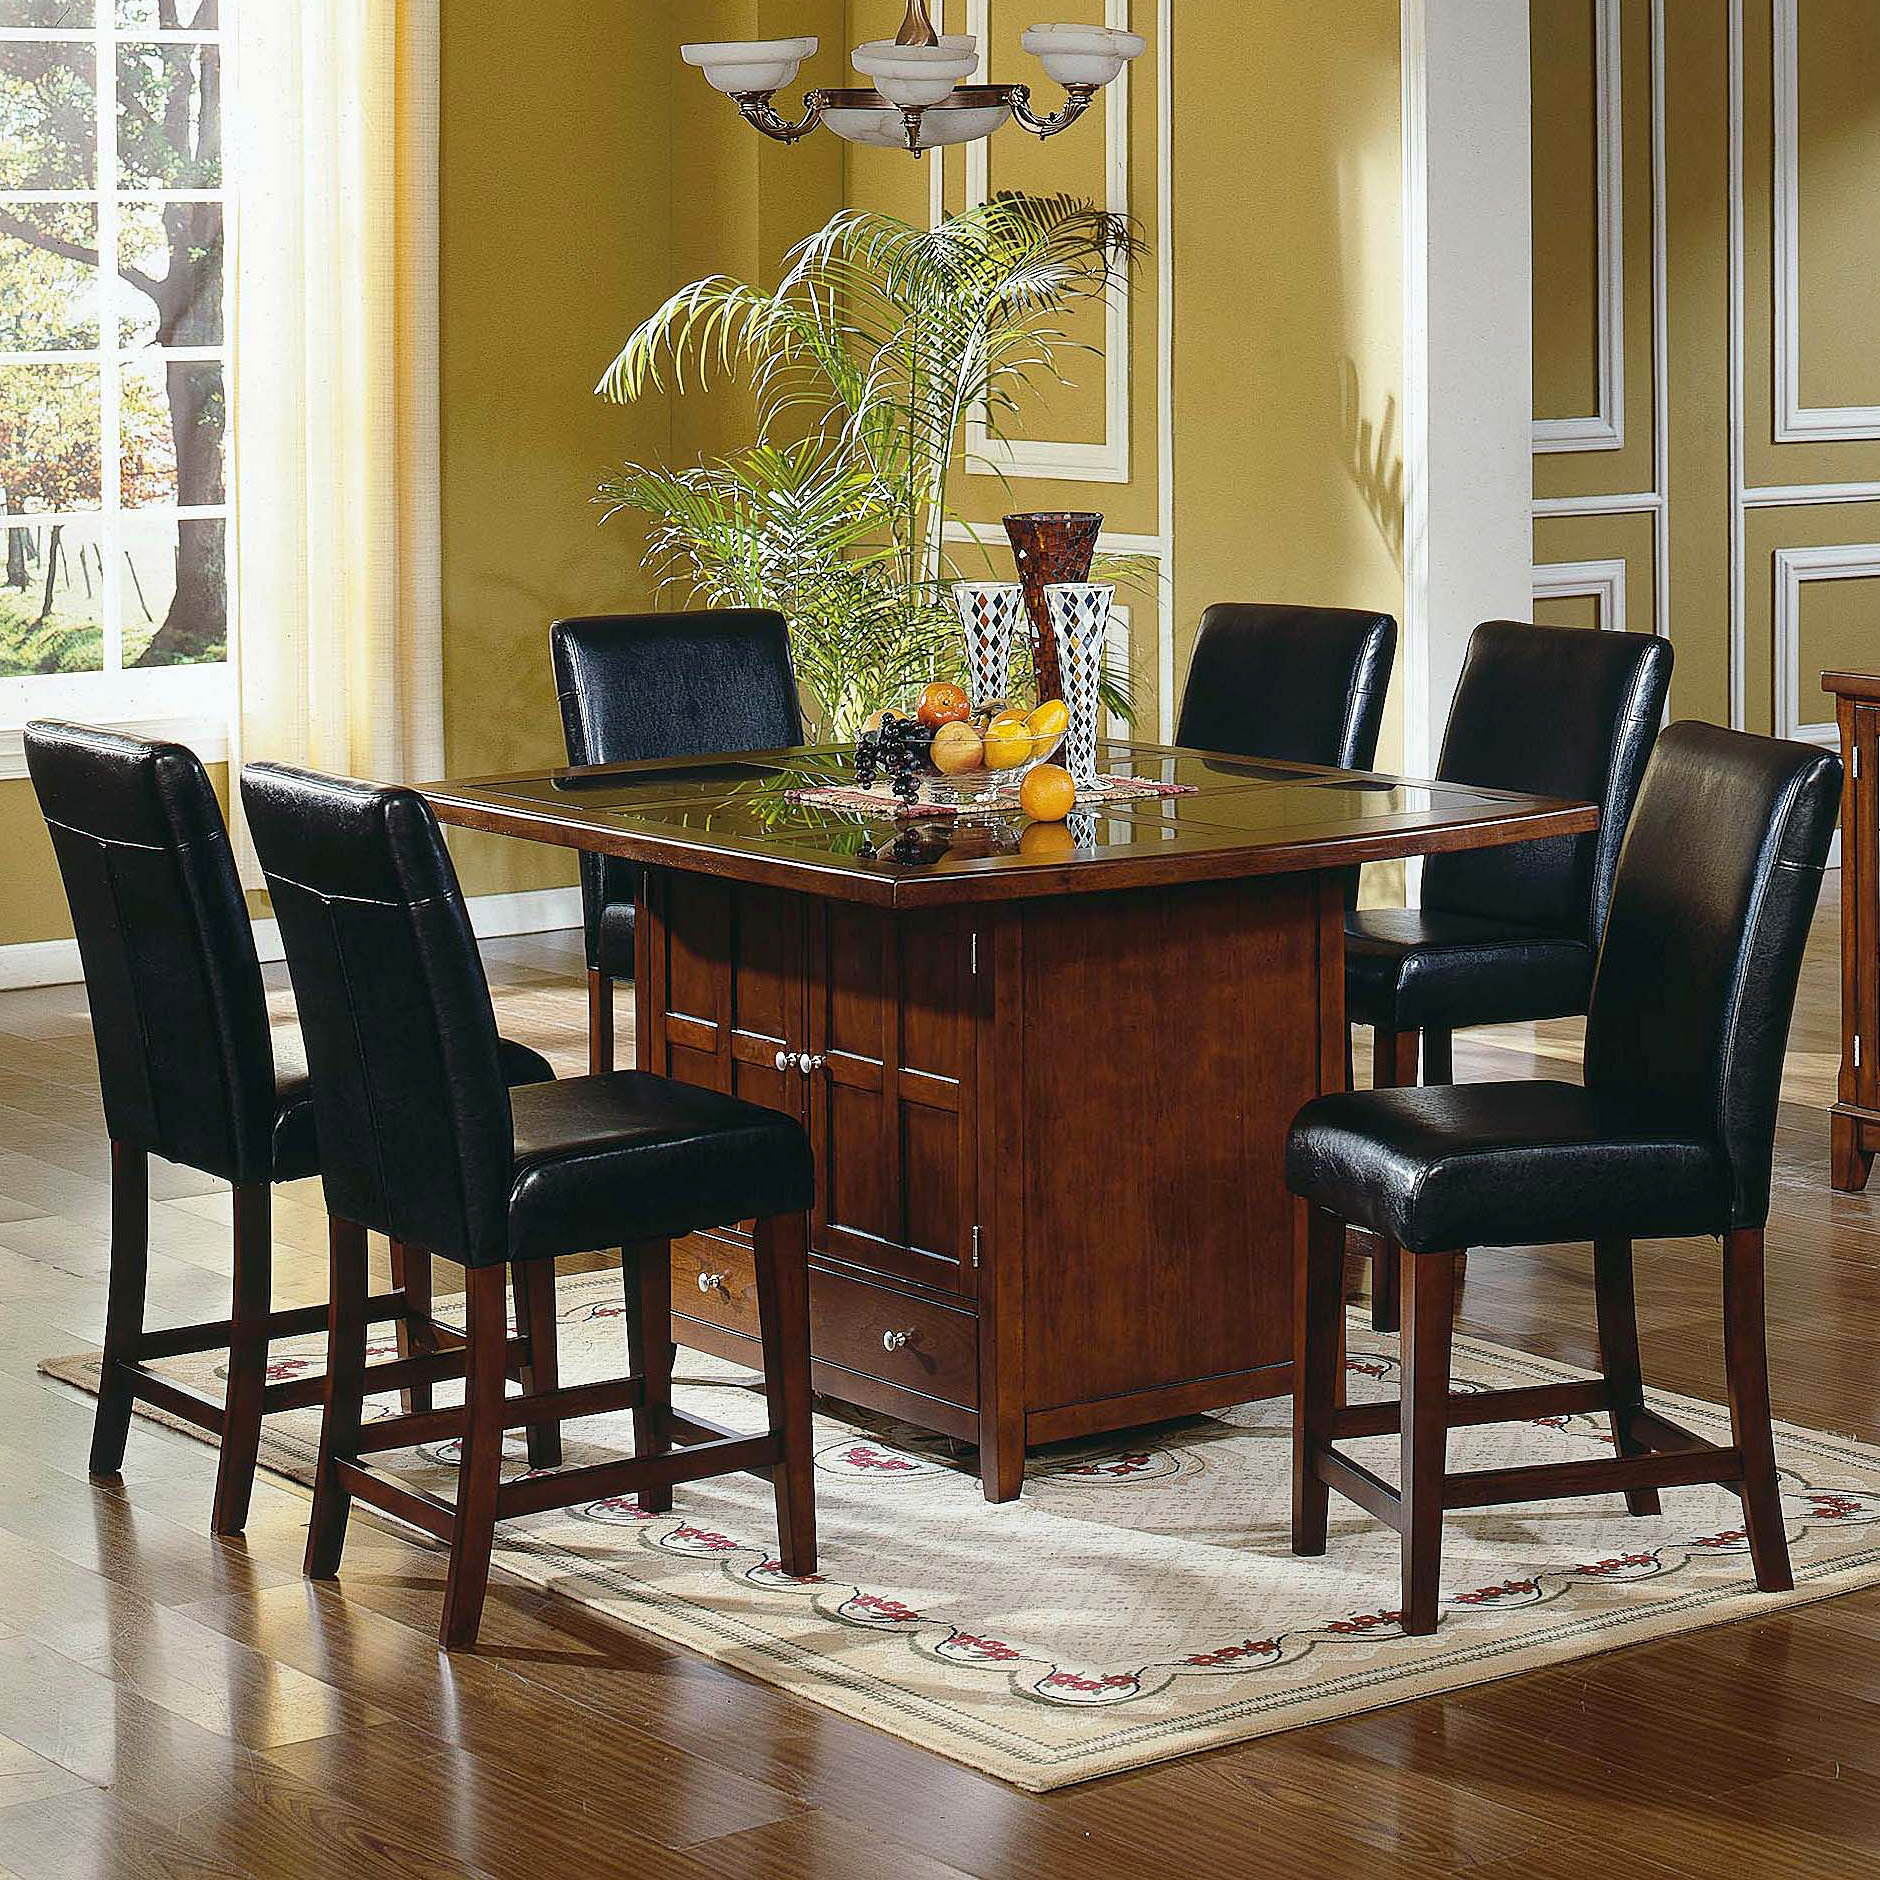 Steve Silver Serena Granite Top 7 Piece Counter Height Set At Hayneedle